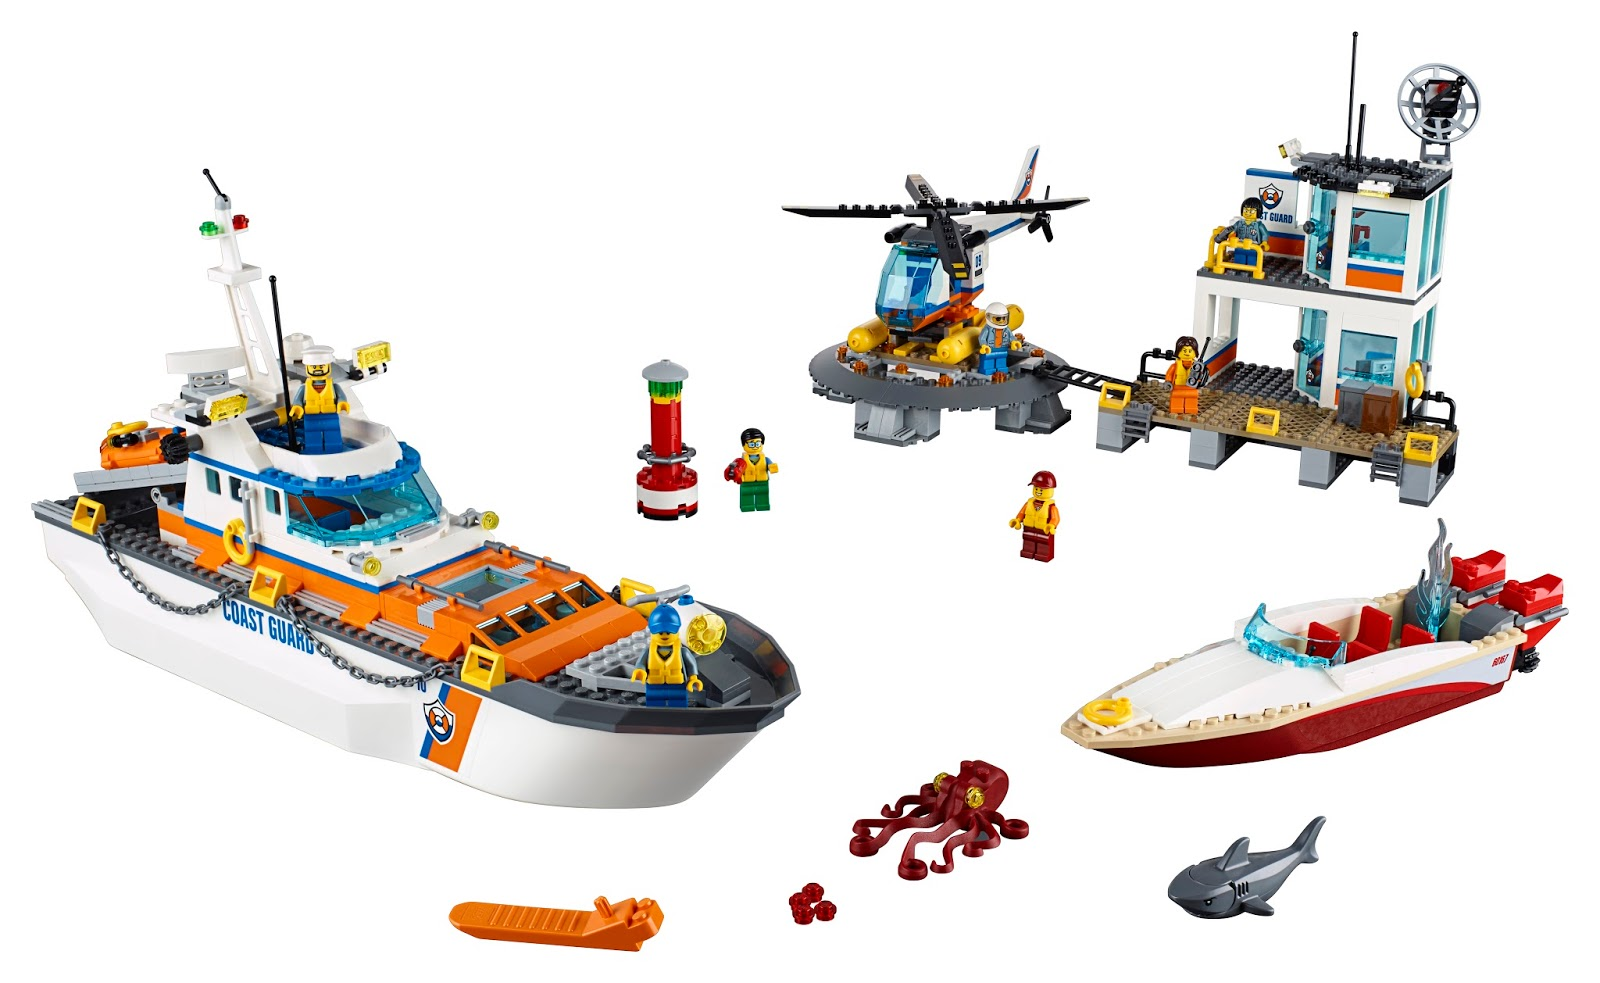 The Lego Coast Guard Headquarters set assembles including 2 boats, headquarters, helicopter , people and animals